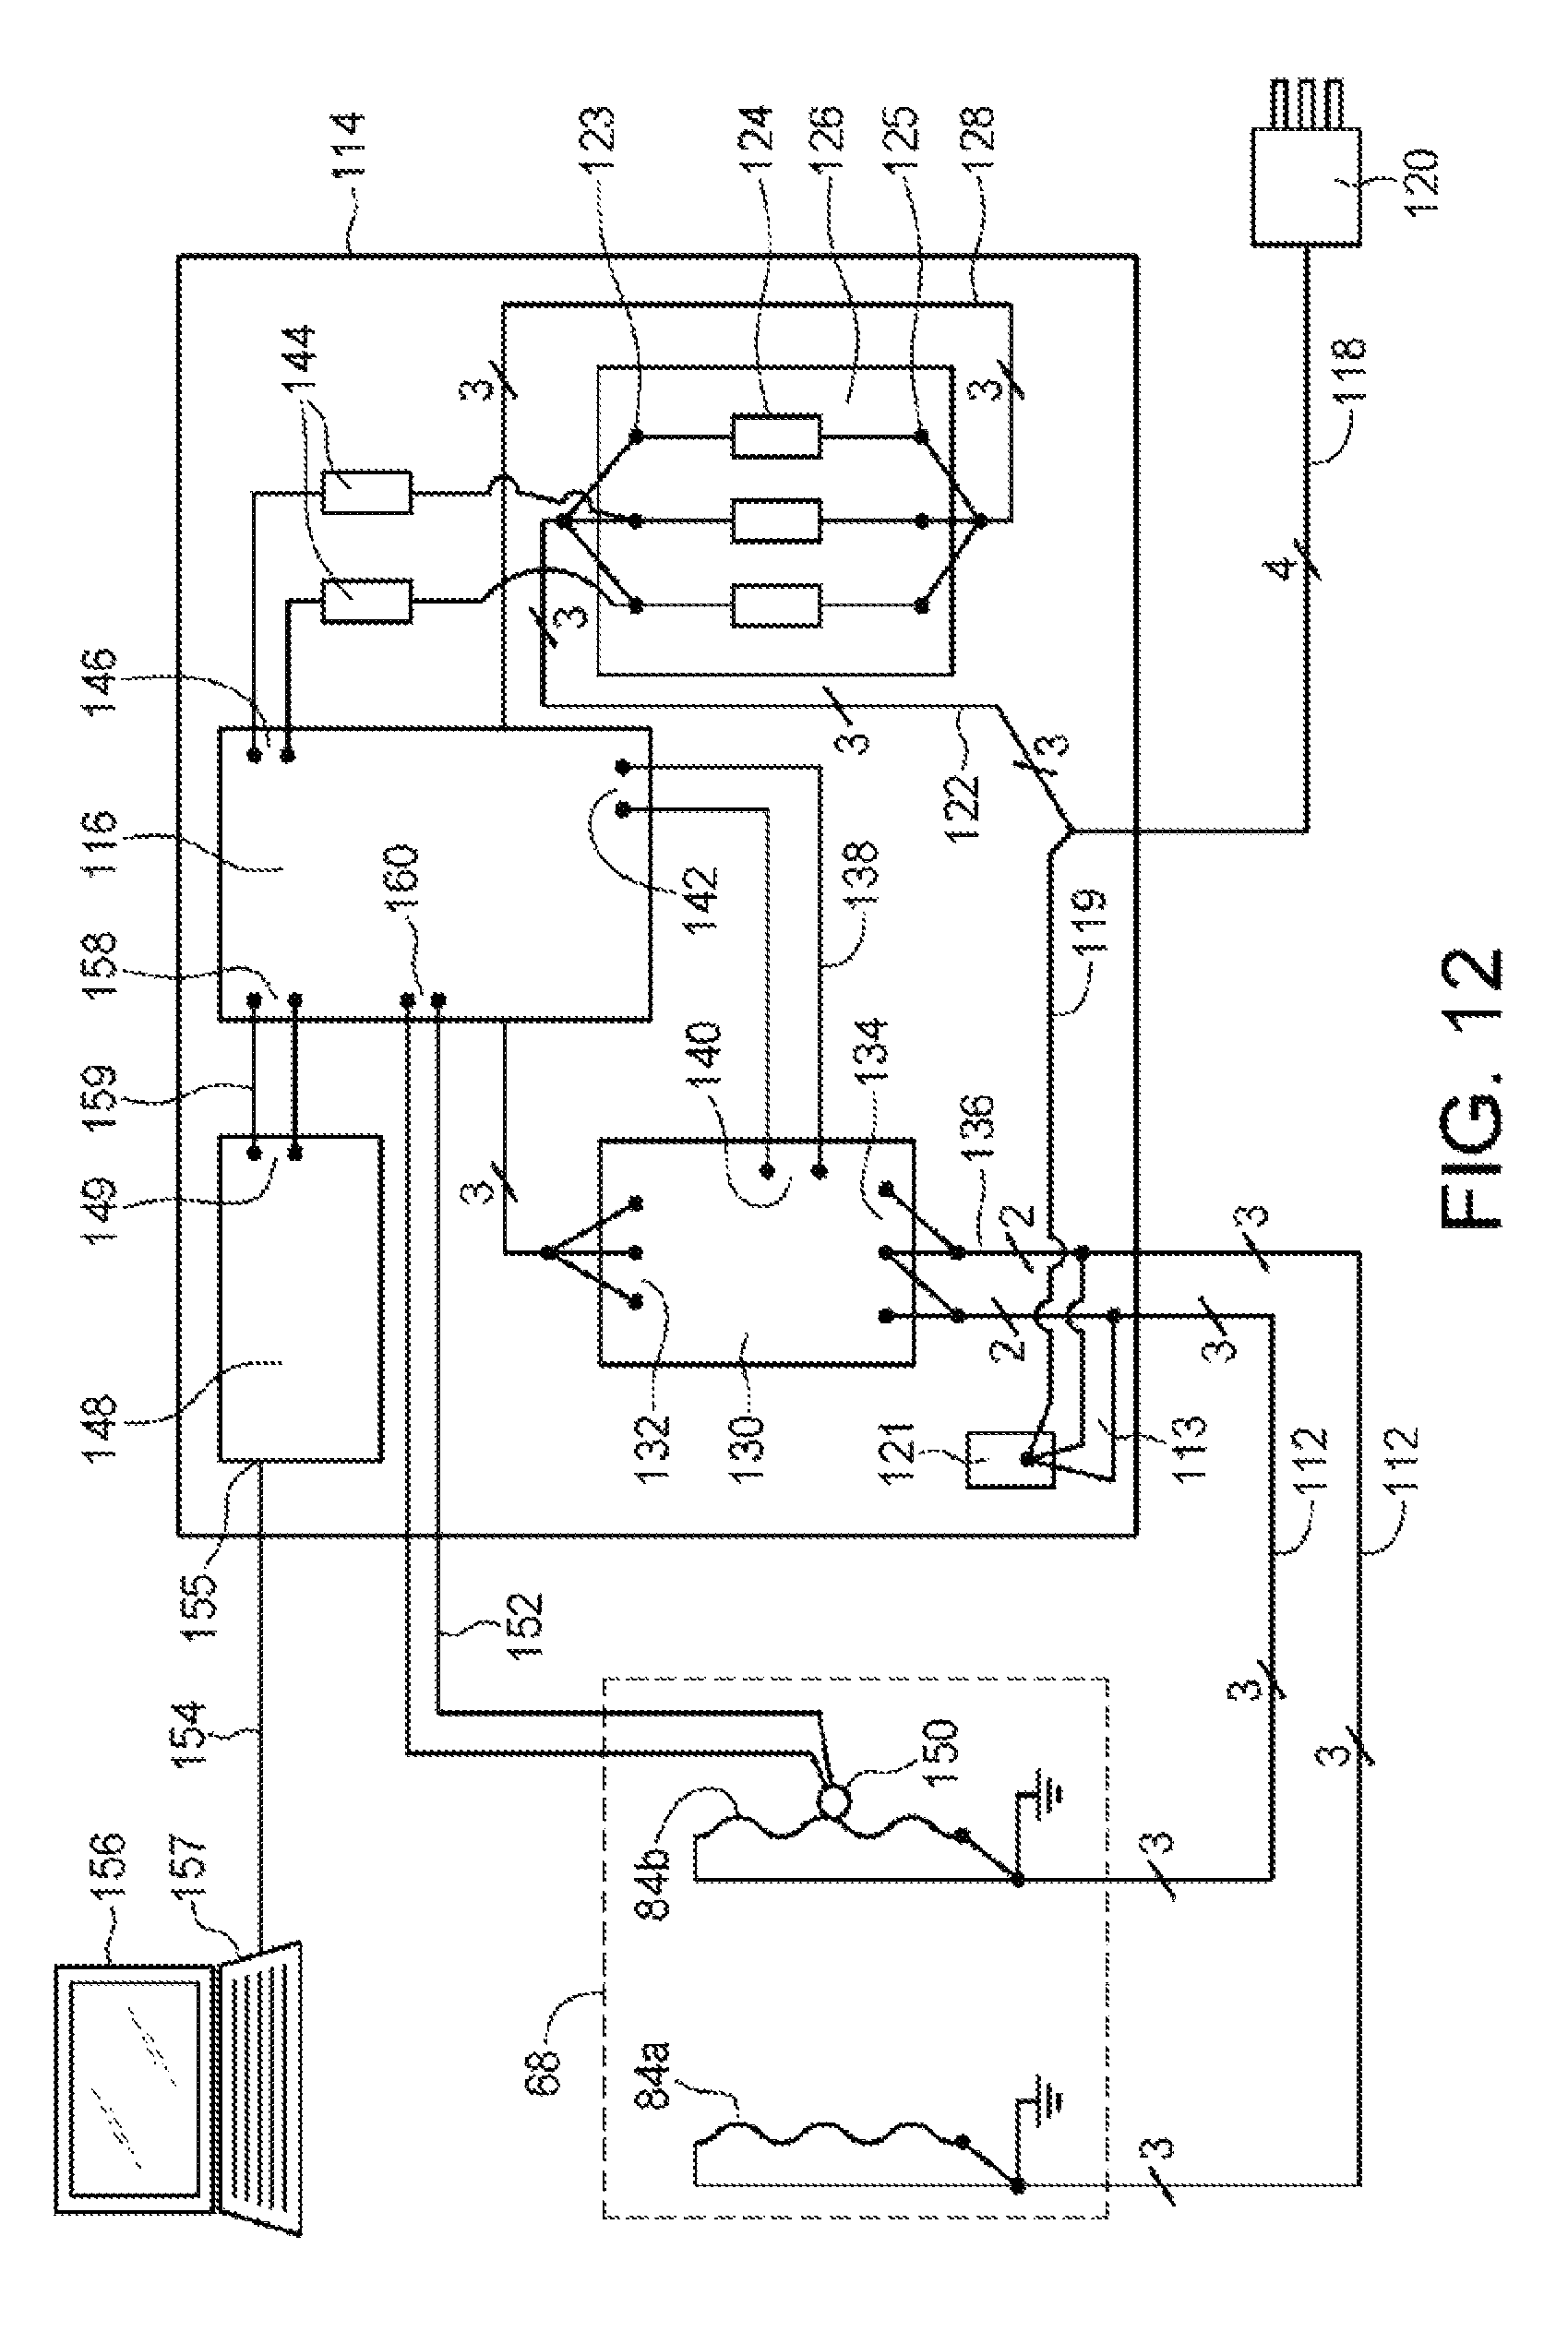 Pipe Welding Schematic Wiring Connections Olds Steering